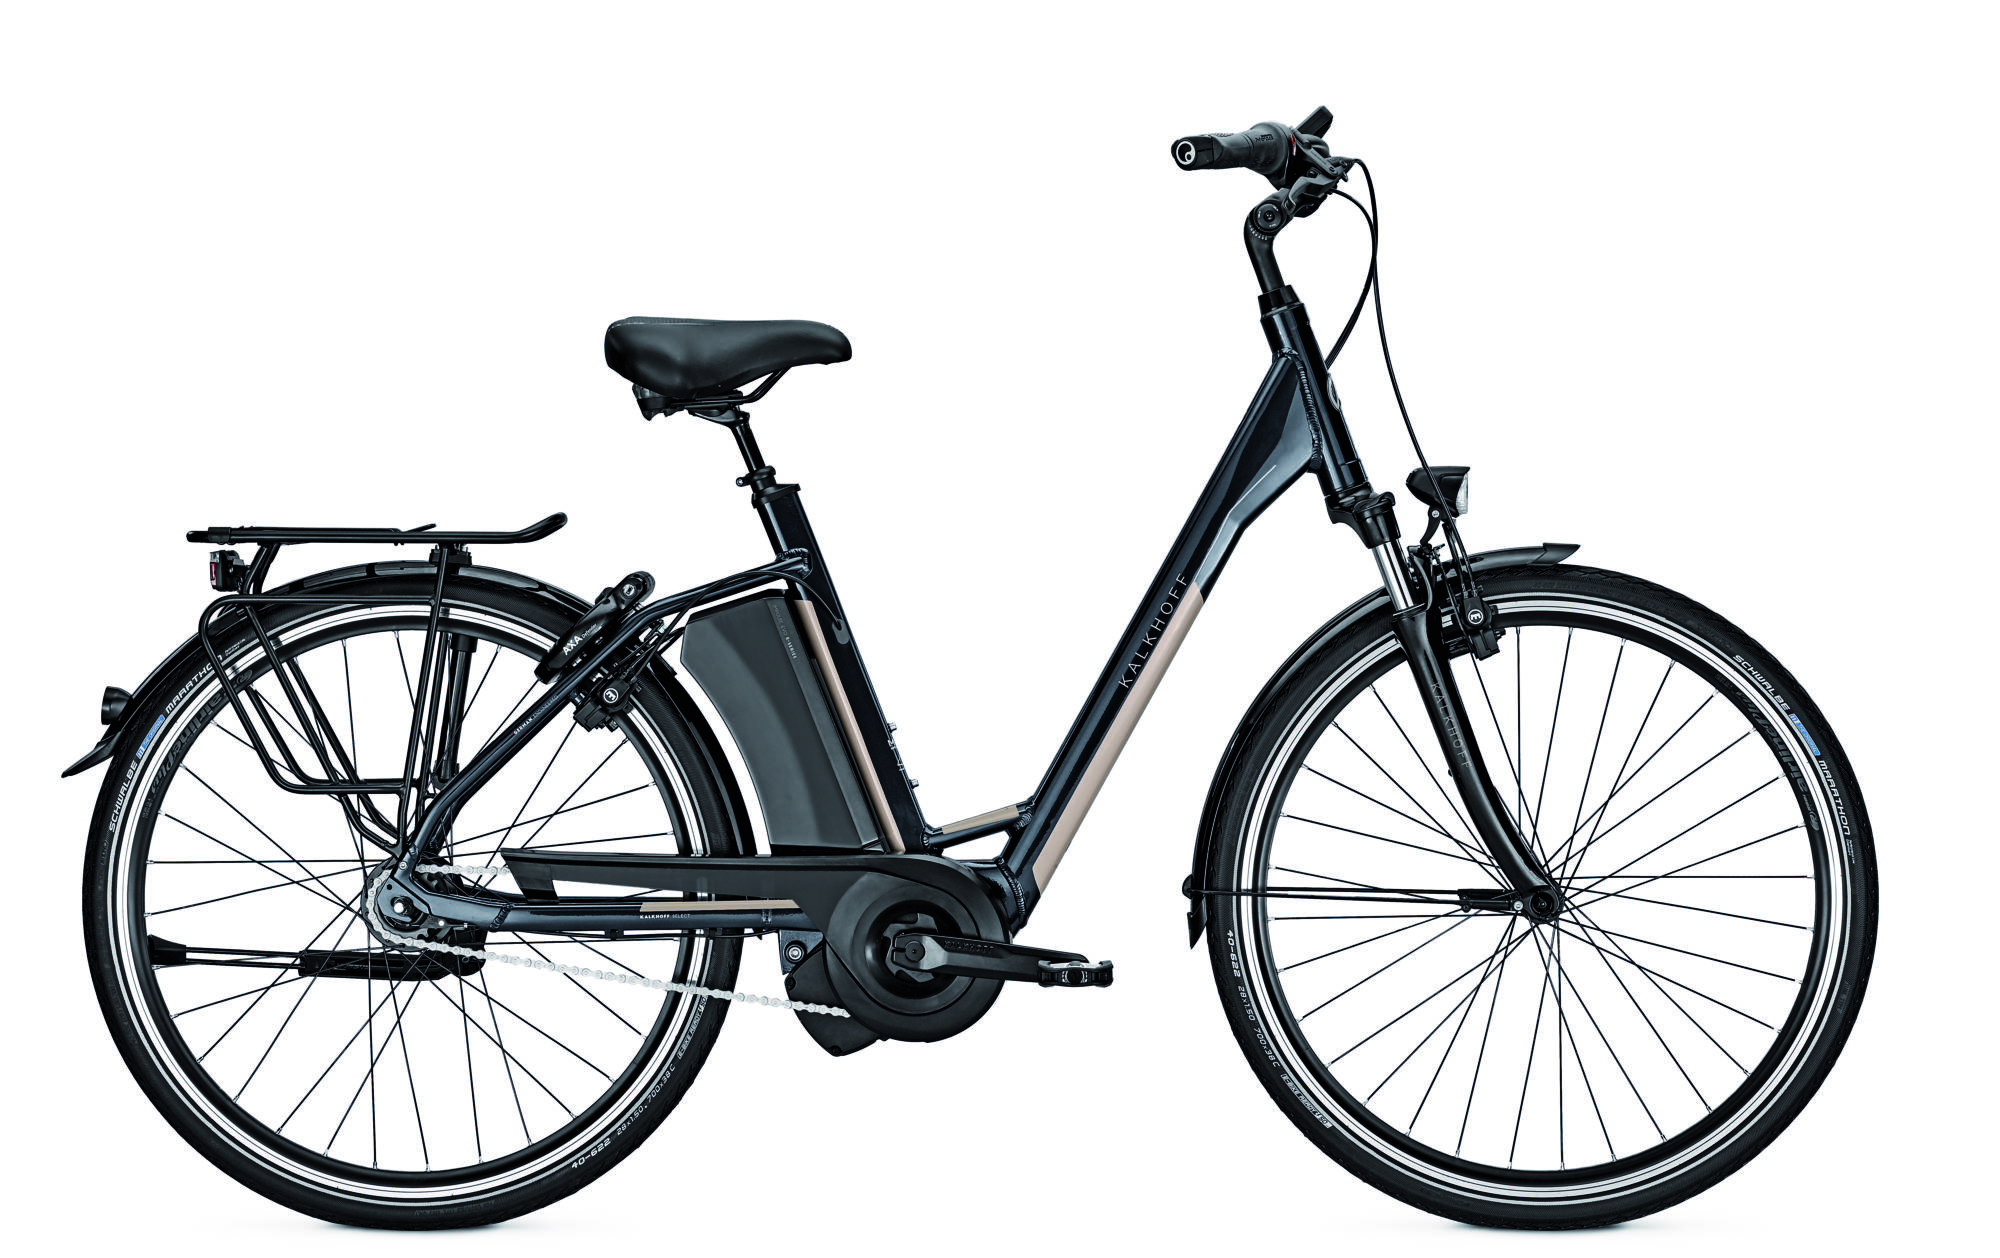 e bike kalkhoff select xxl i8 bis 170 kg 17 5 ah 28 zoll wave freilauf seablue radsport e bikes. Black Bedroom Furniture Sets. Home Design Ideas